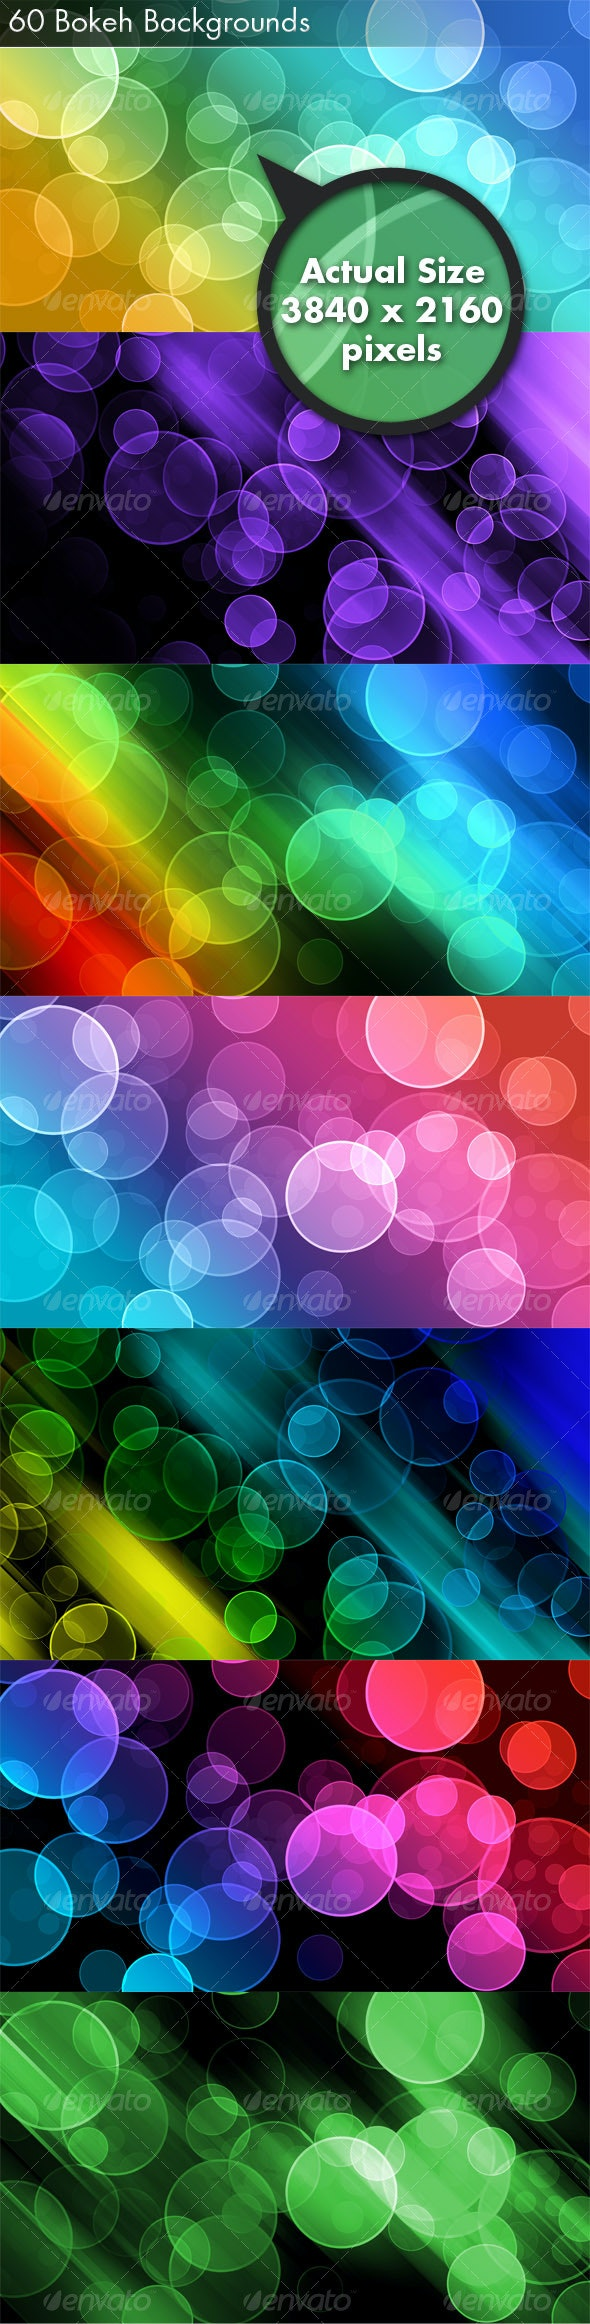 60 Bokeh Abstracts - Backgrounds Graphics